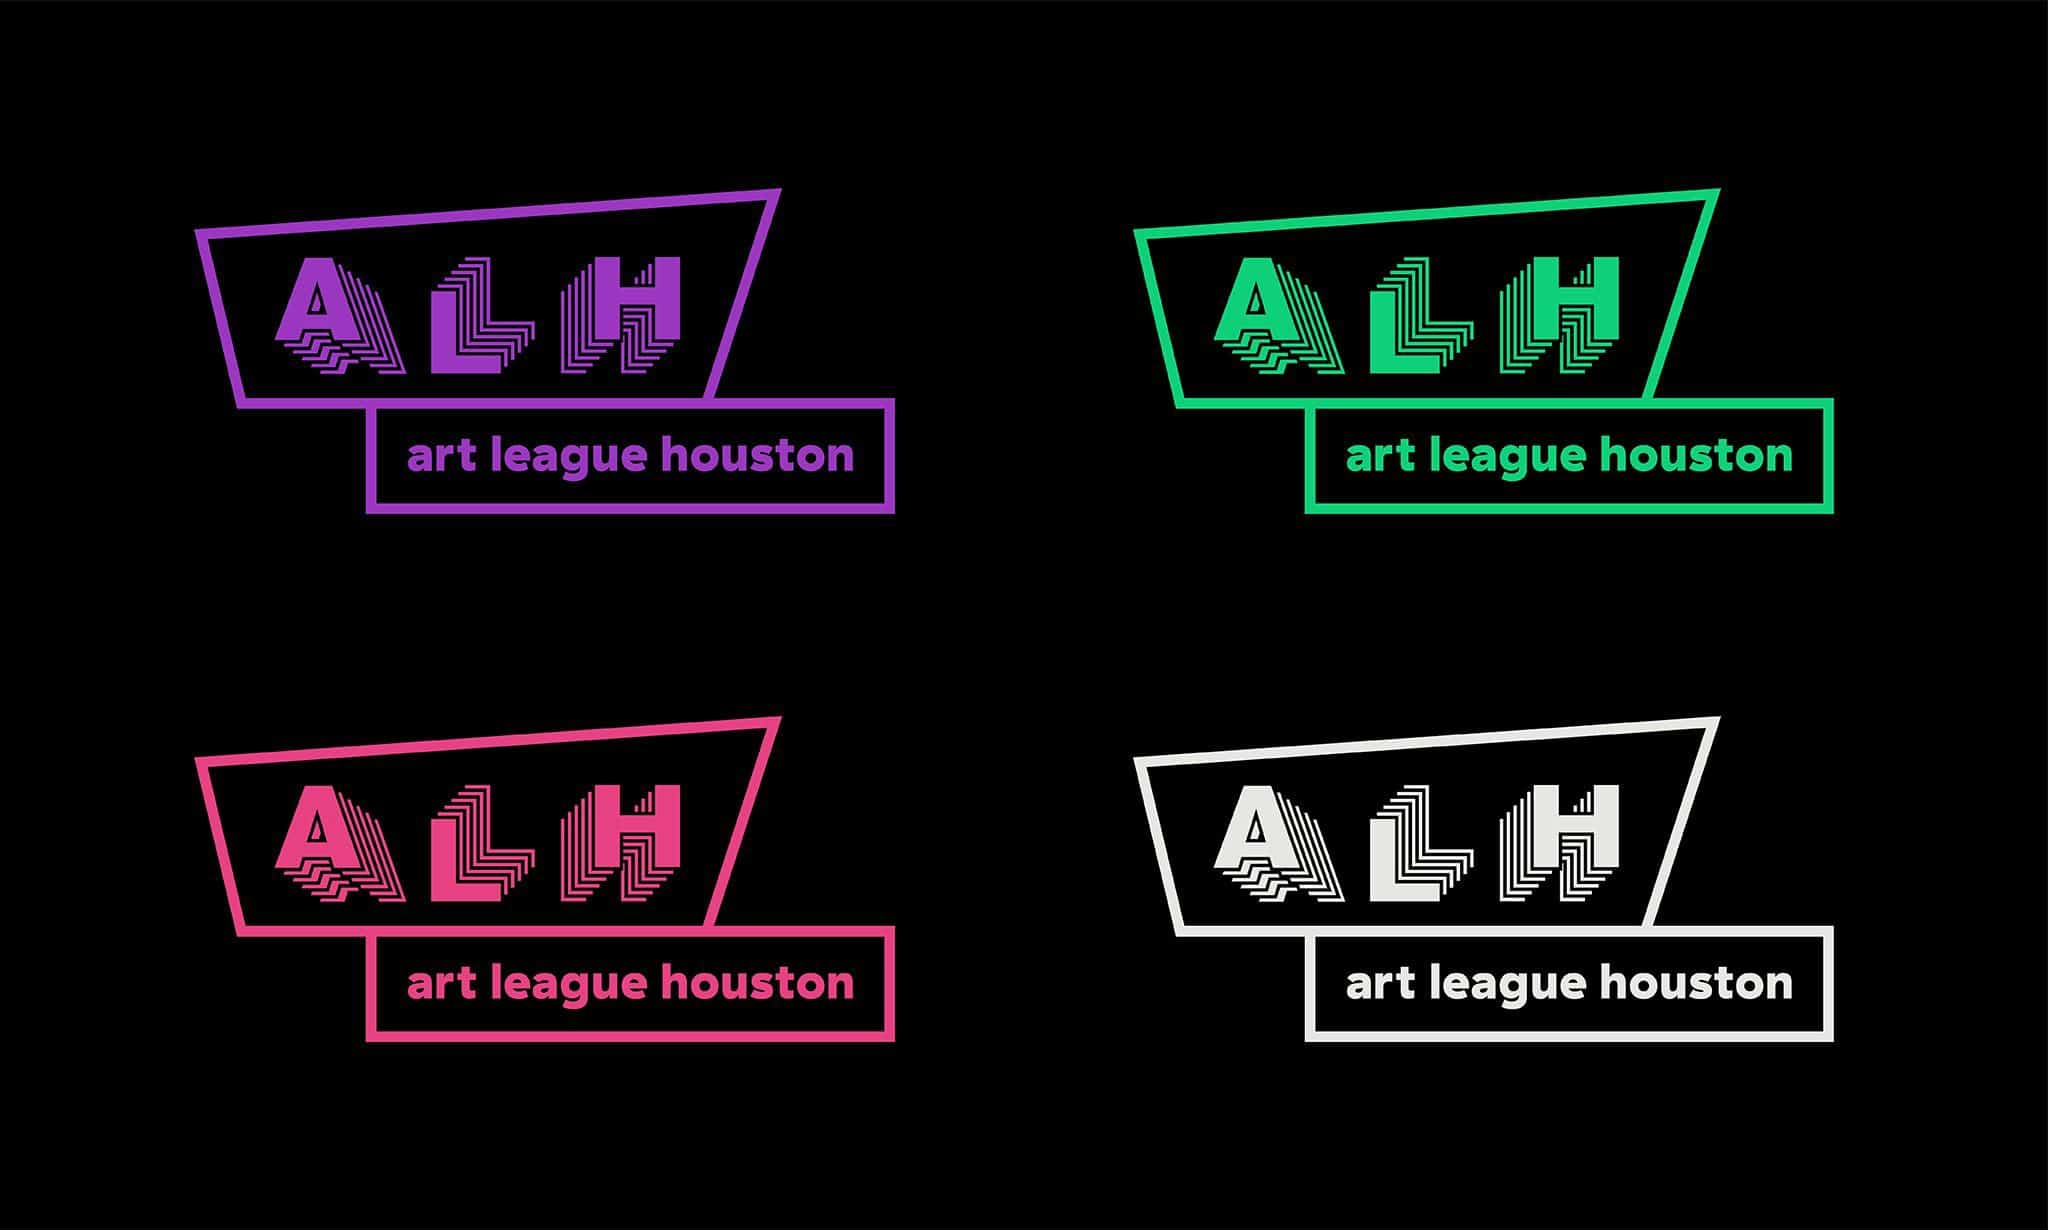 Logo variations for Art League Houston | Designed by Field of Study: A branding and graphic design consultancy | Houston TX | Jennifer Blanco & John Earles